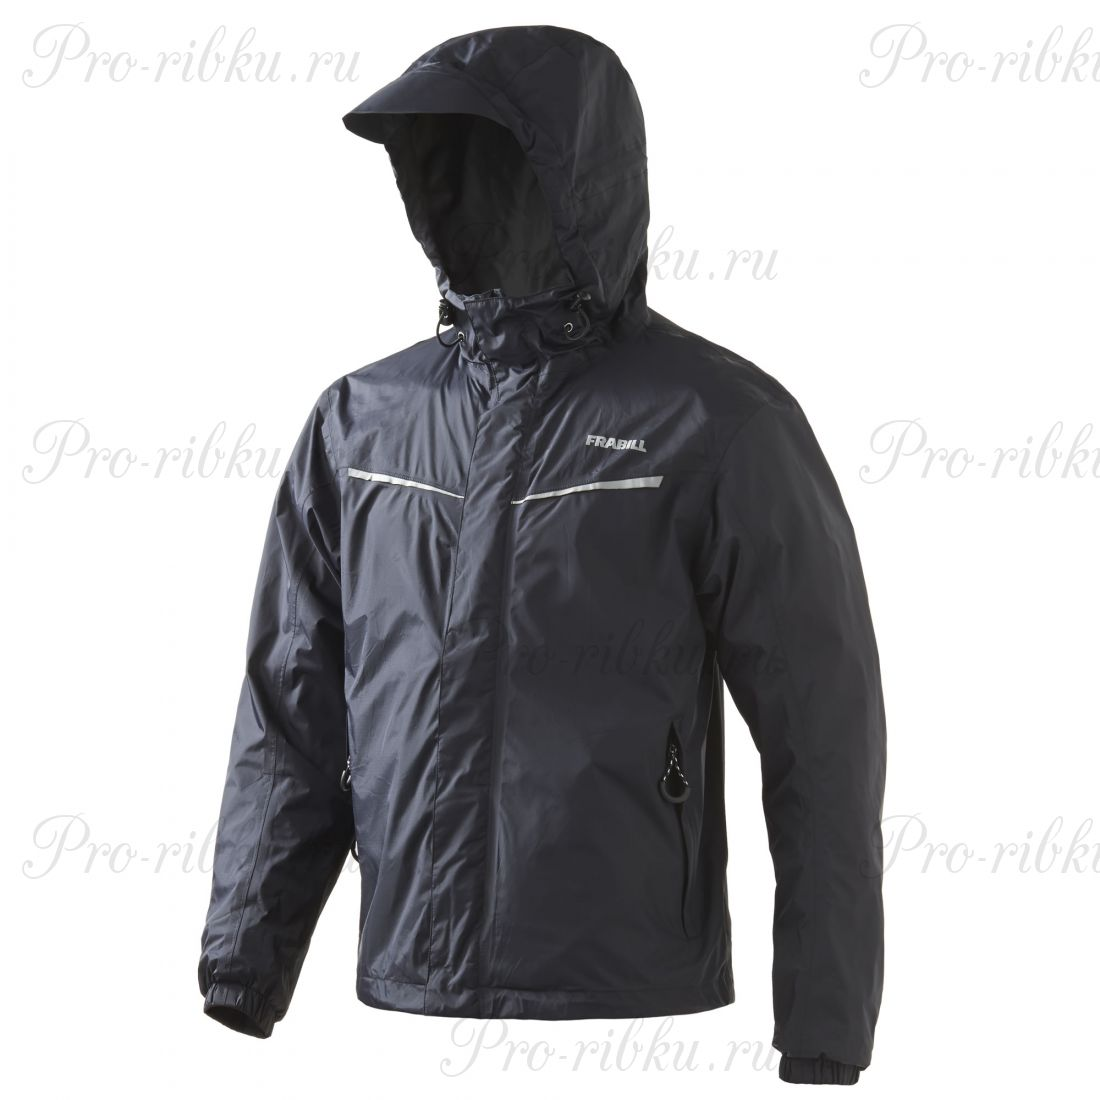 Куртка штормовая FRABILL Stow Jacket Black, р.2XL